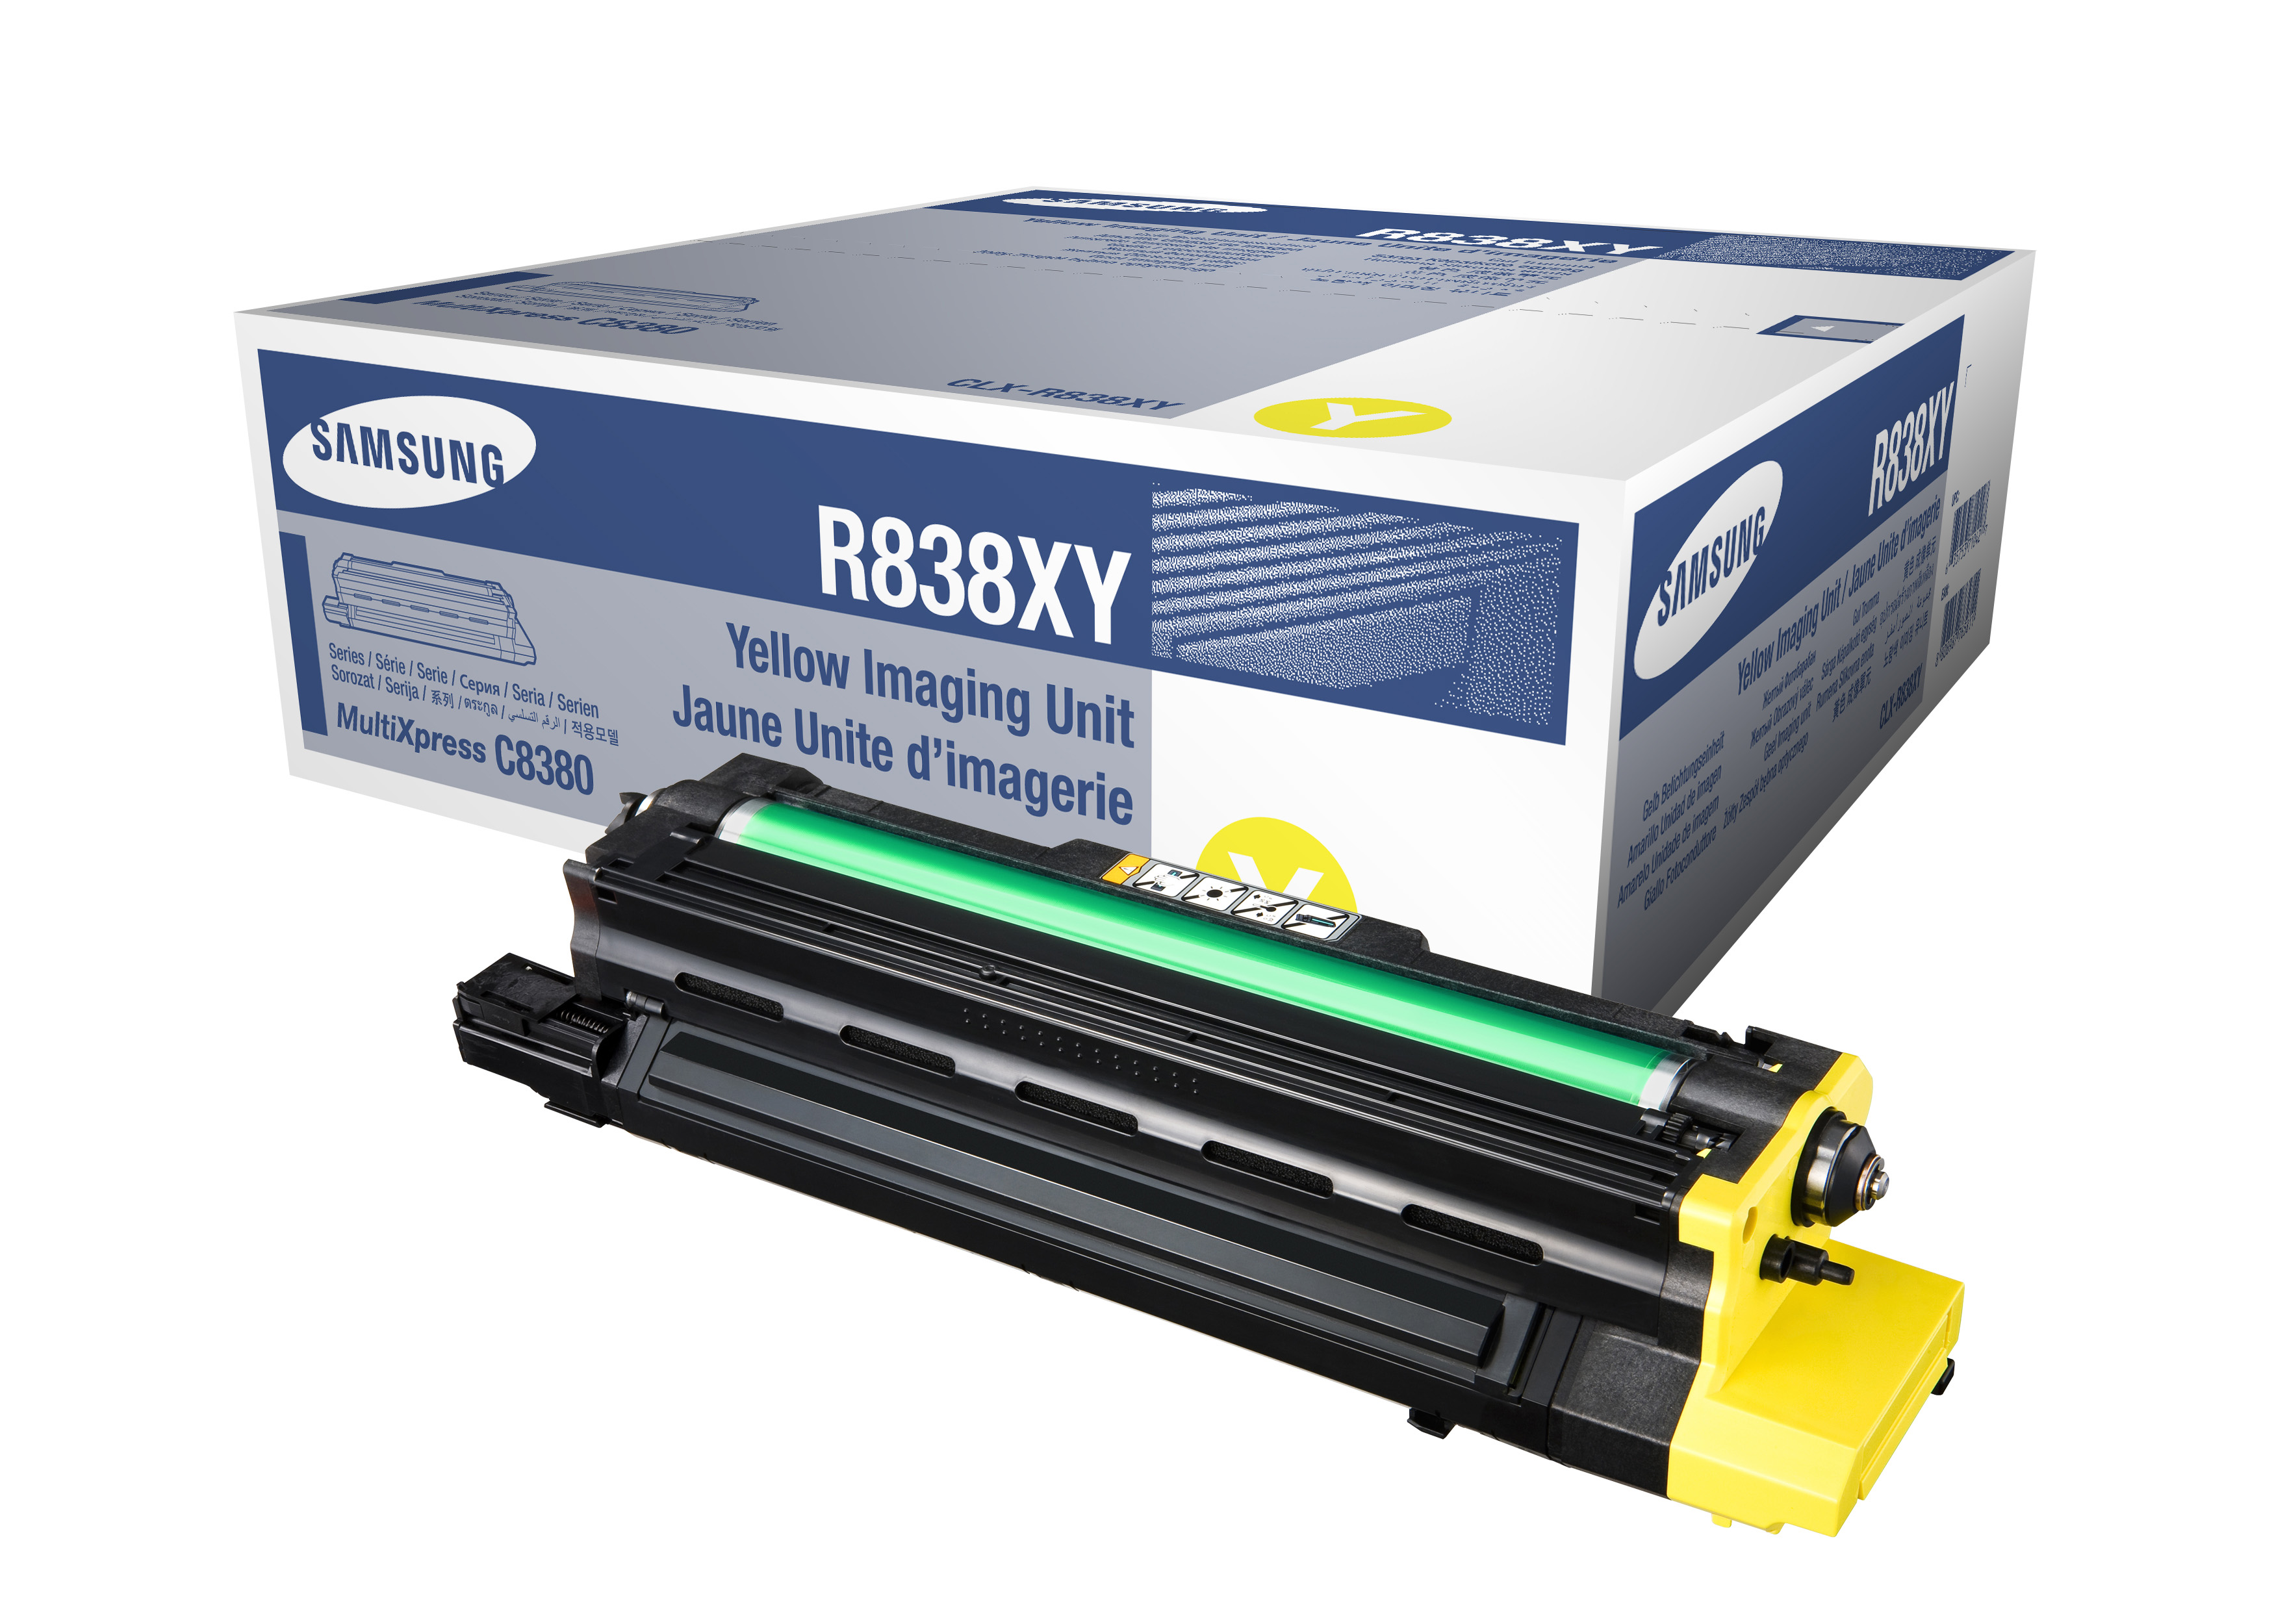 Samsung CLX-8380 Yellow Imaging Unit - 30,000 pages @ 5%